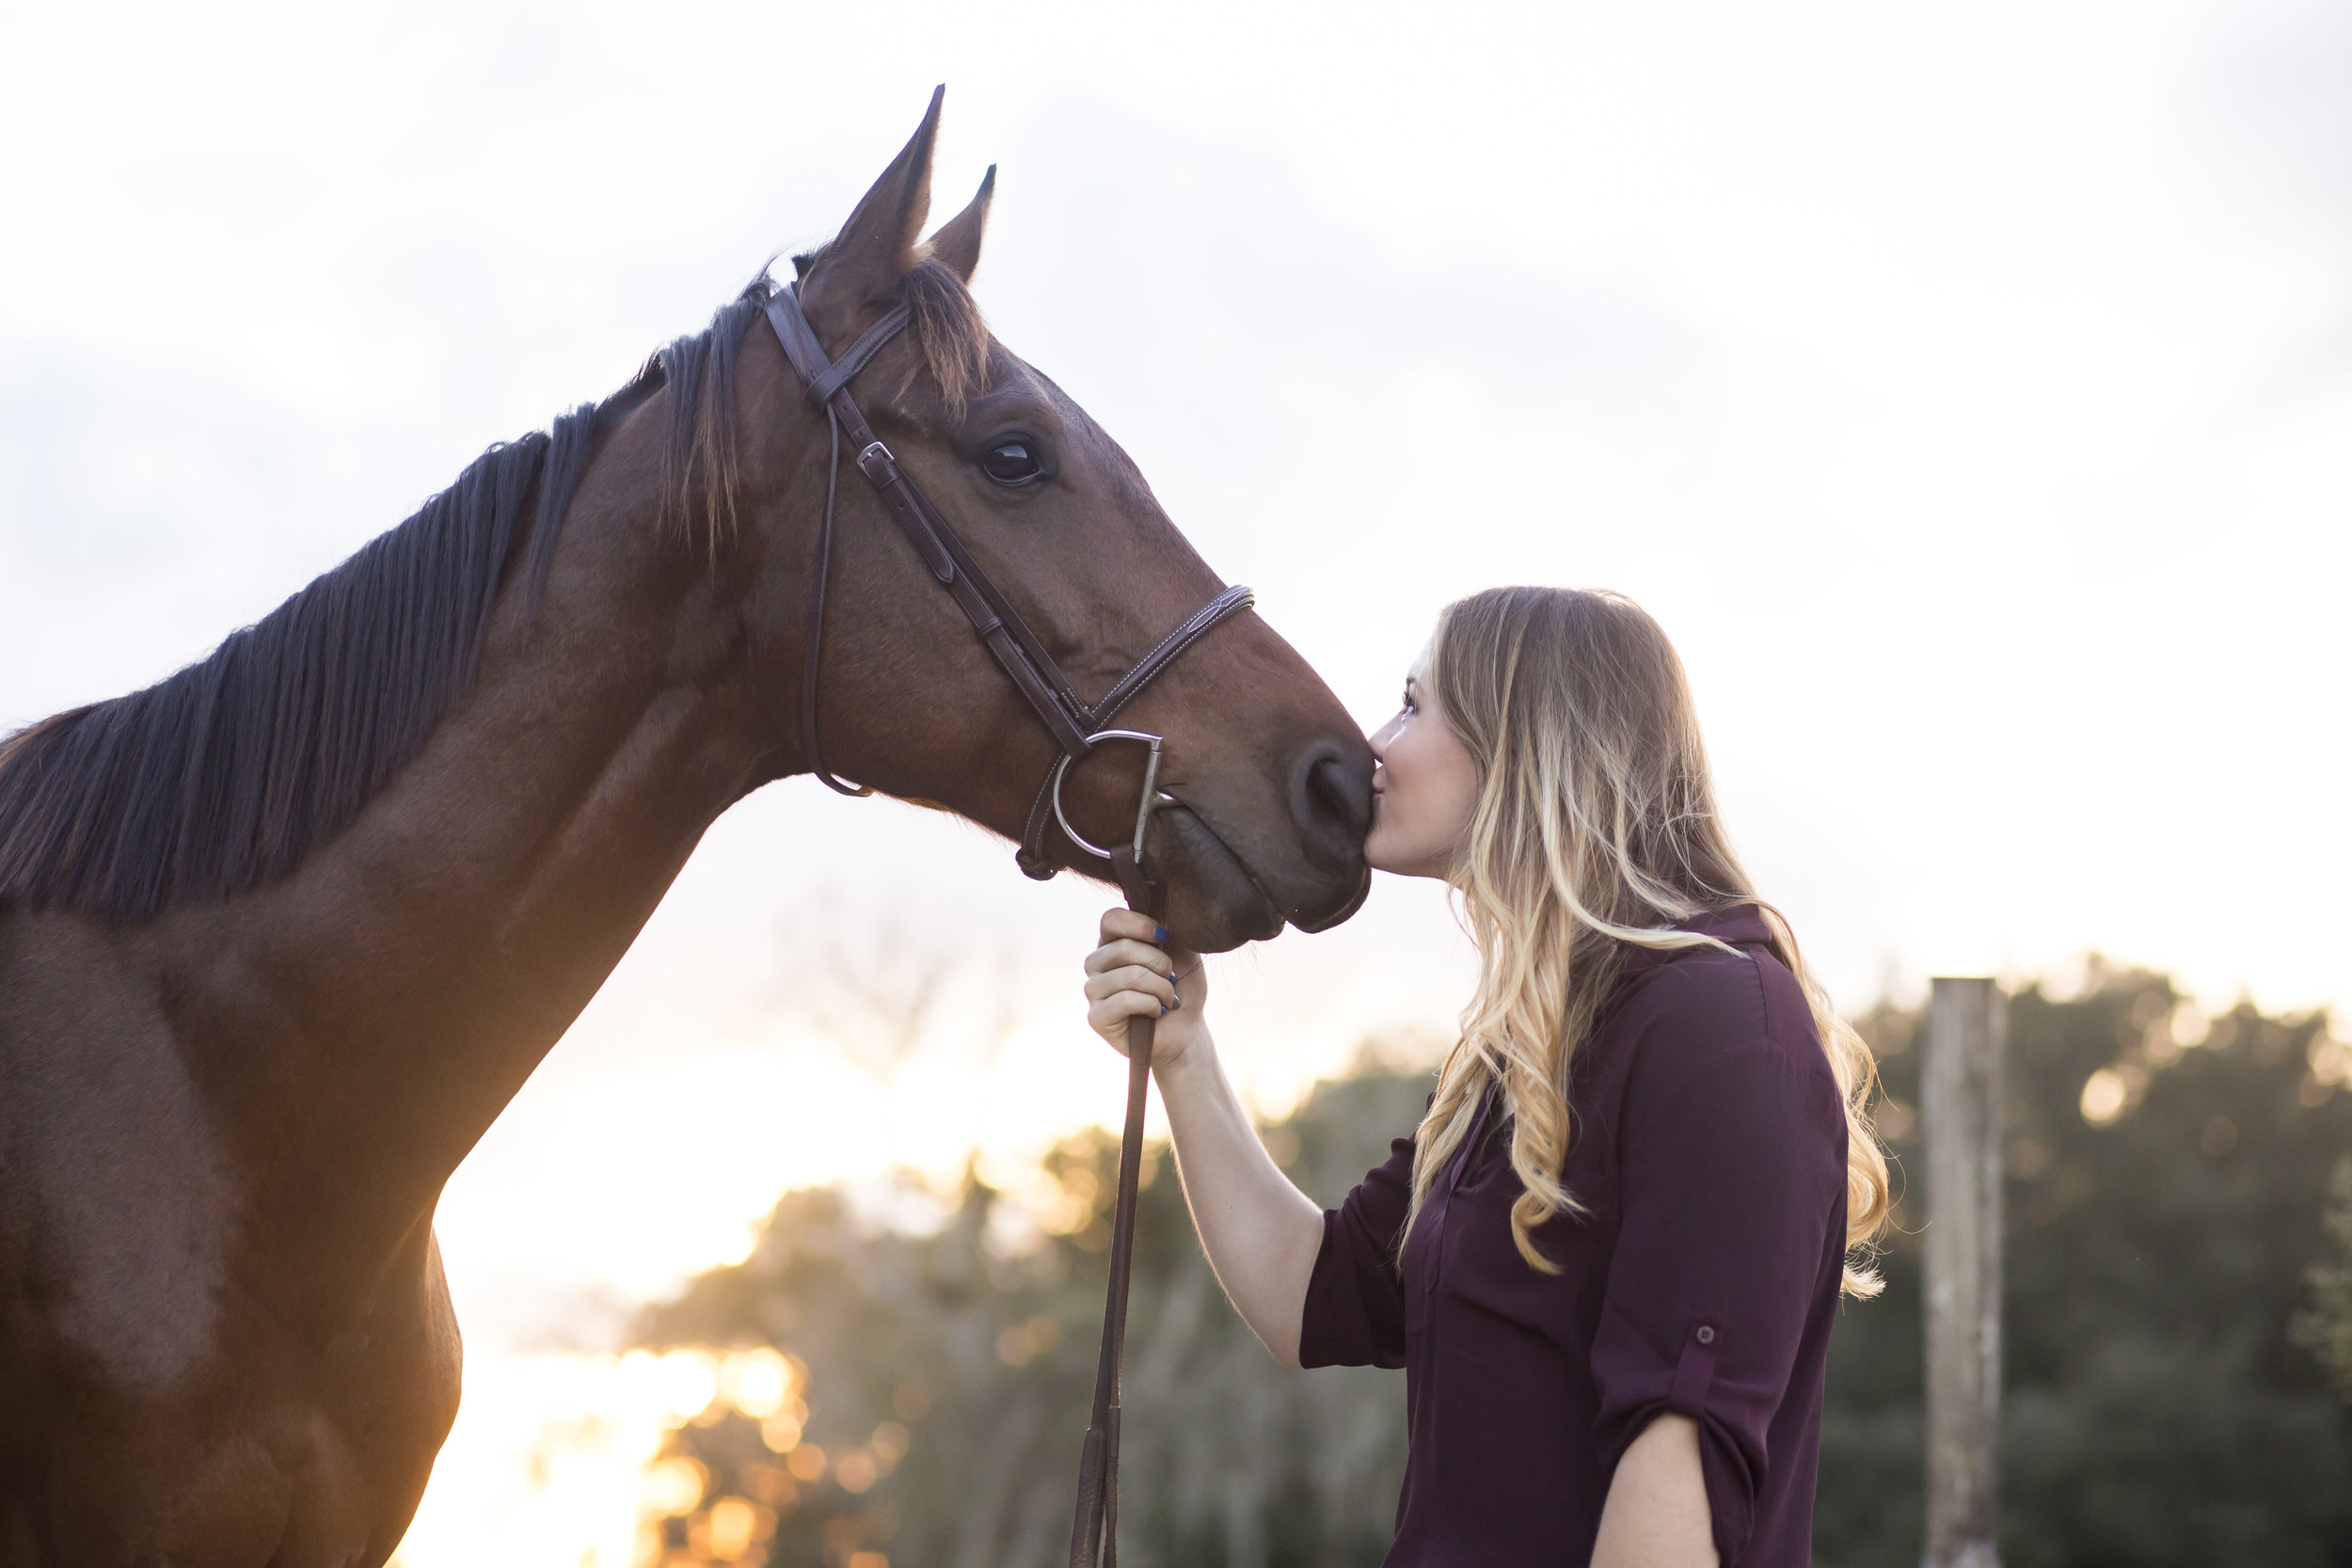 Young girl gives horse a kiss